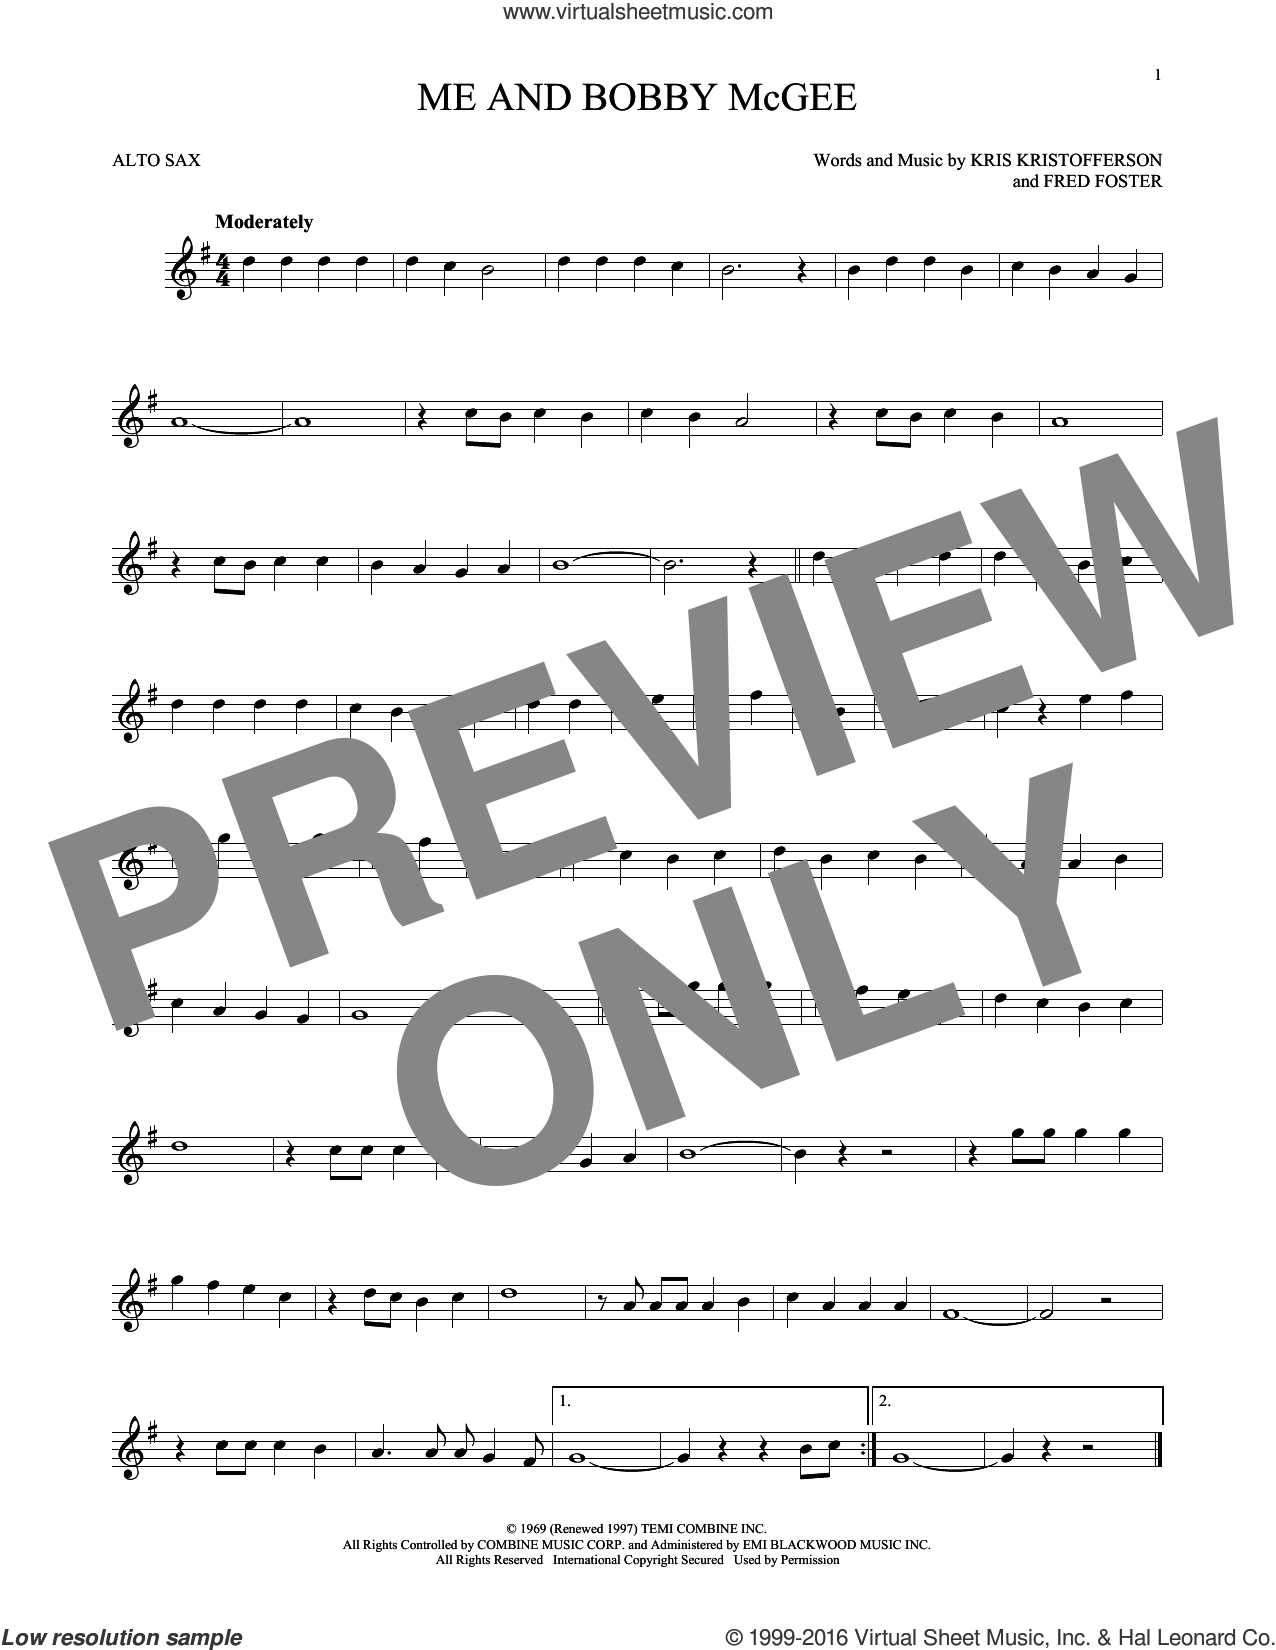 Me And Bobby McGee sheet music for alto saxophone solo by Fred Foster, Janis Joplin, Roger Miller and Kris Kristofferson. Score Image Preview.